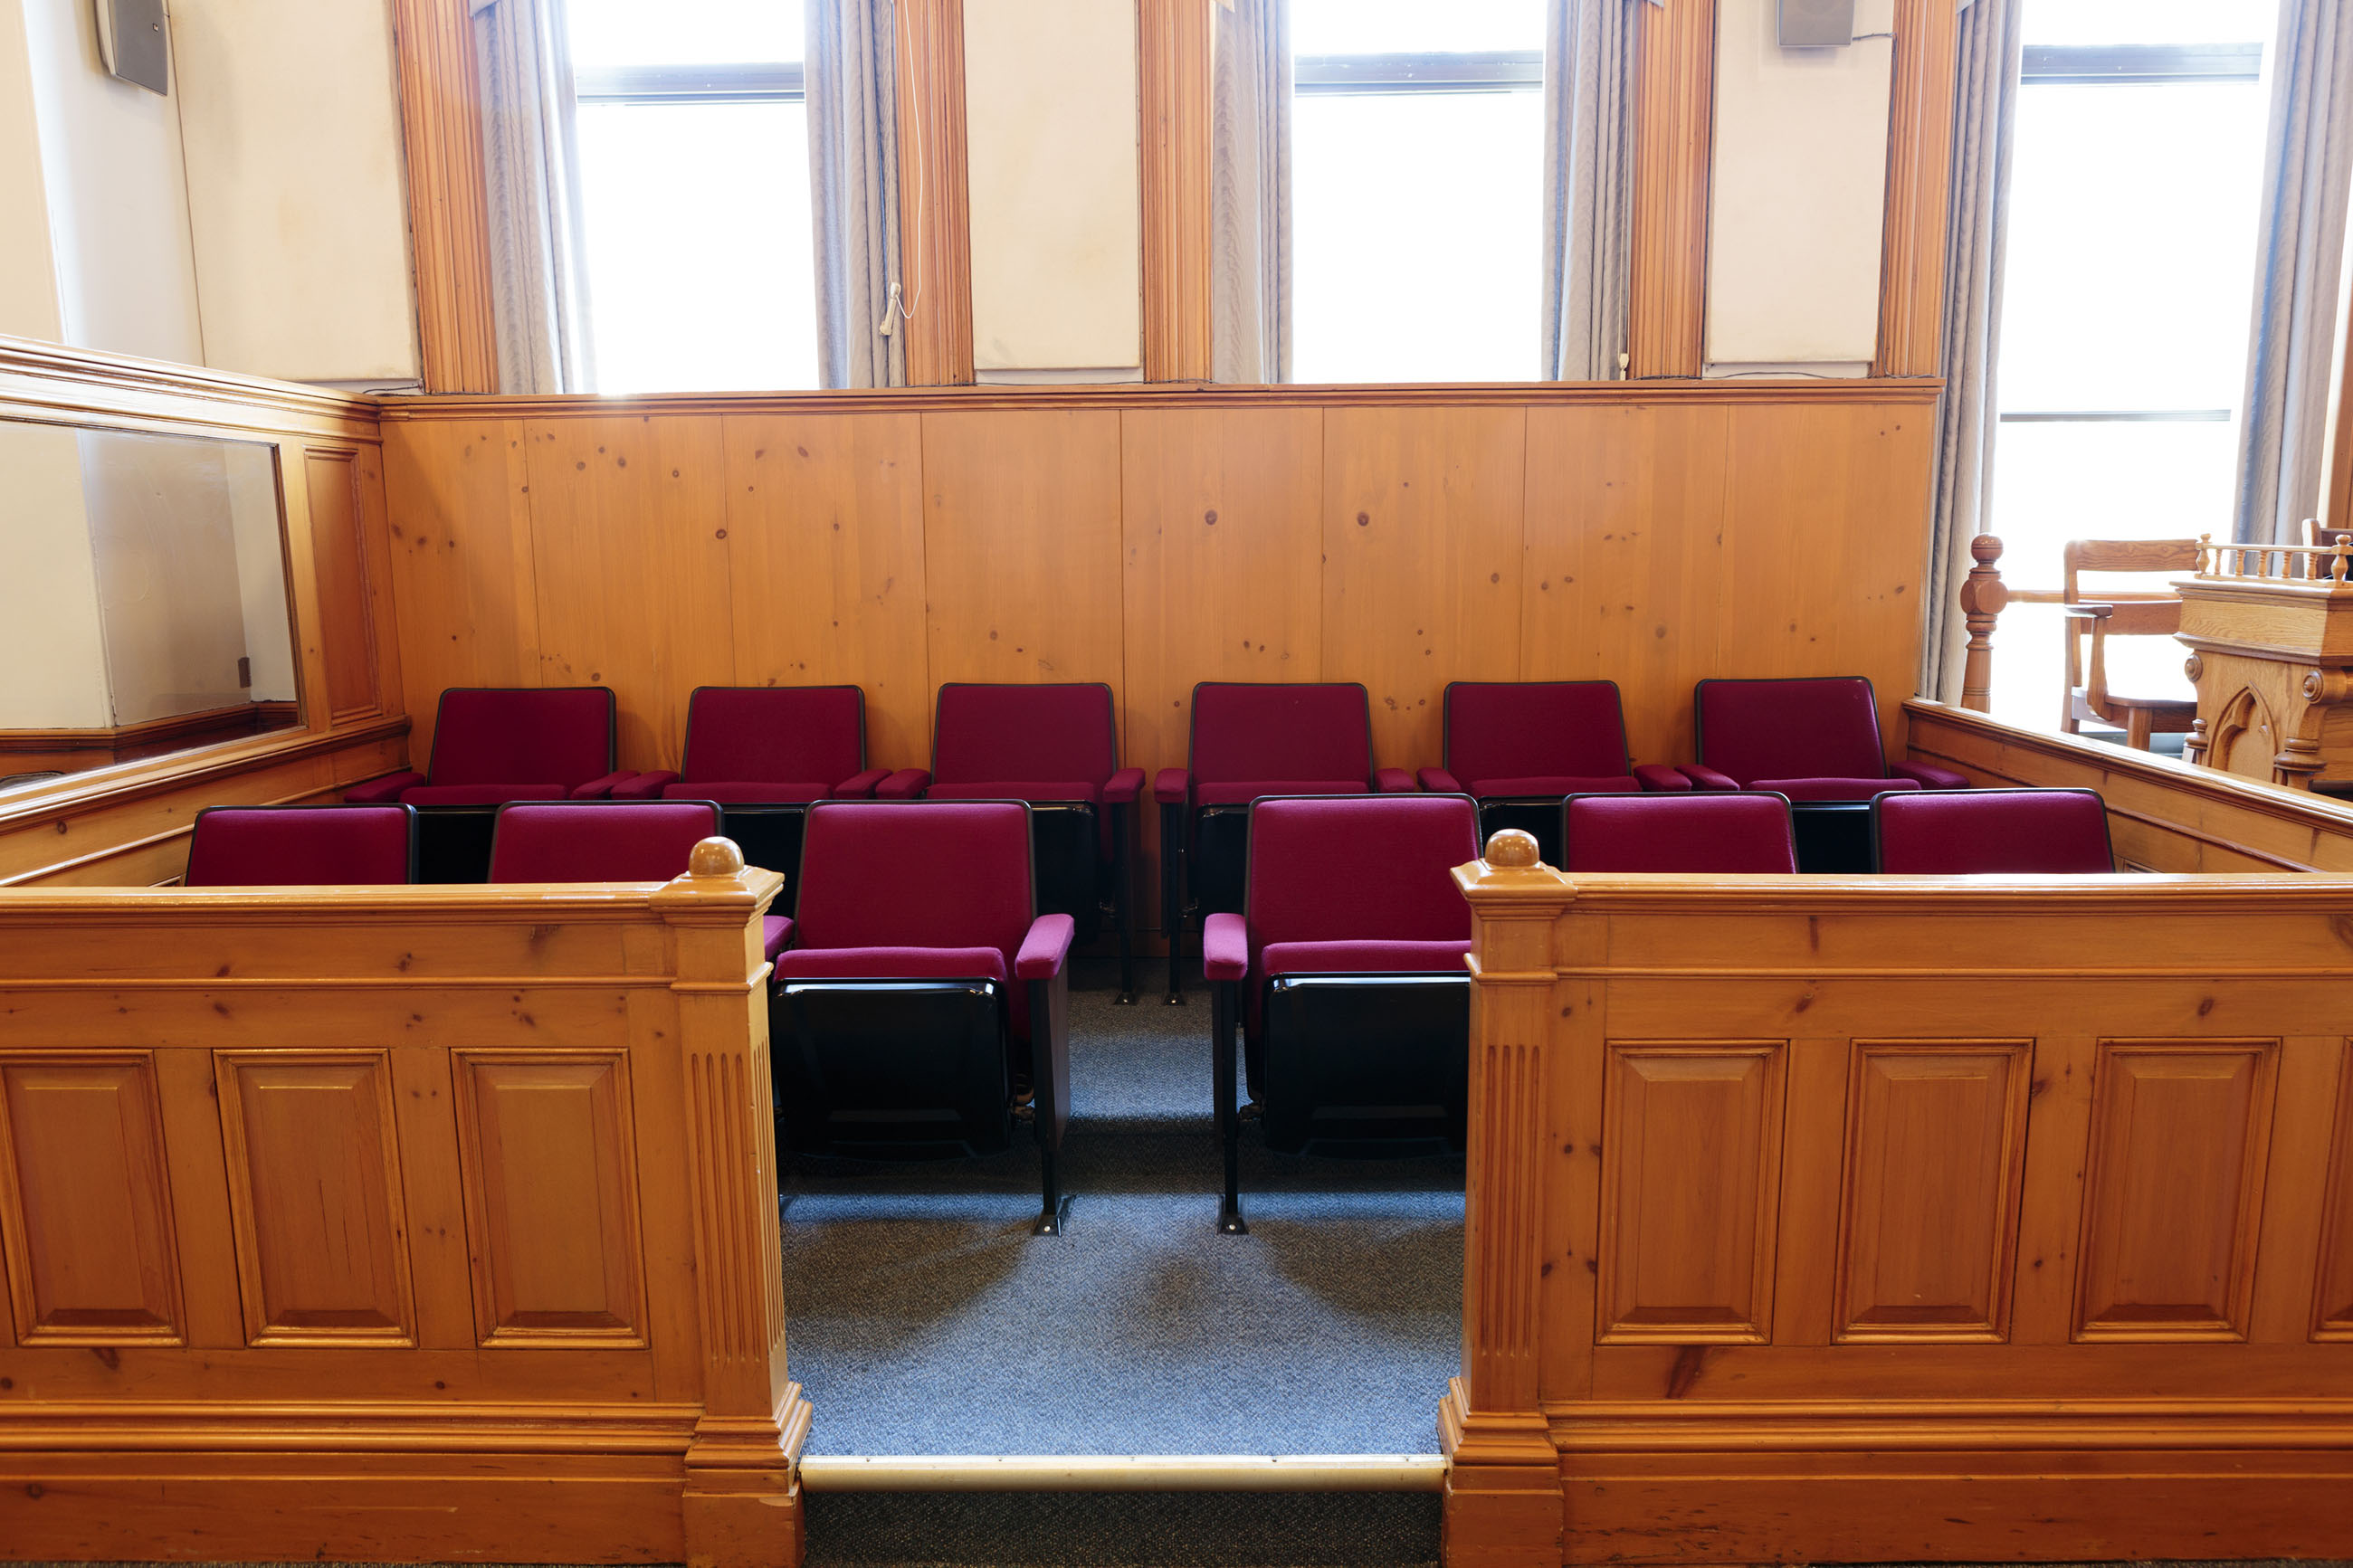 ST. JOHN'S, NEWFOUNDLAND AND LABRADOR, CANADA - SEPTEMBER 23, 2017. Seats of the jury box in courtroom number 1 at the Supreme Court, taken on september 23, 2017 in St. John's .